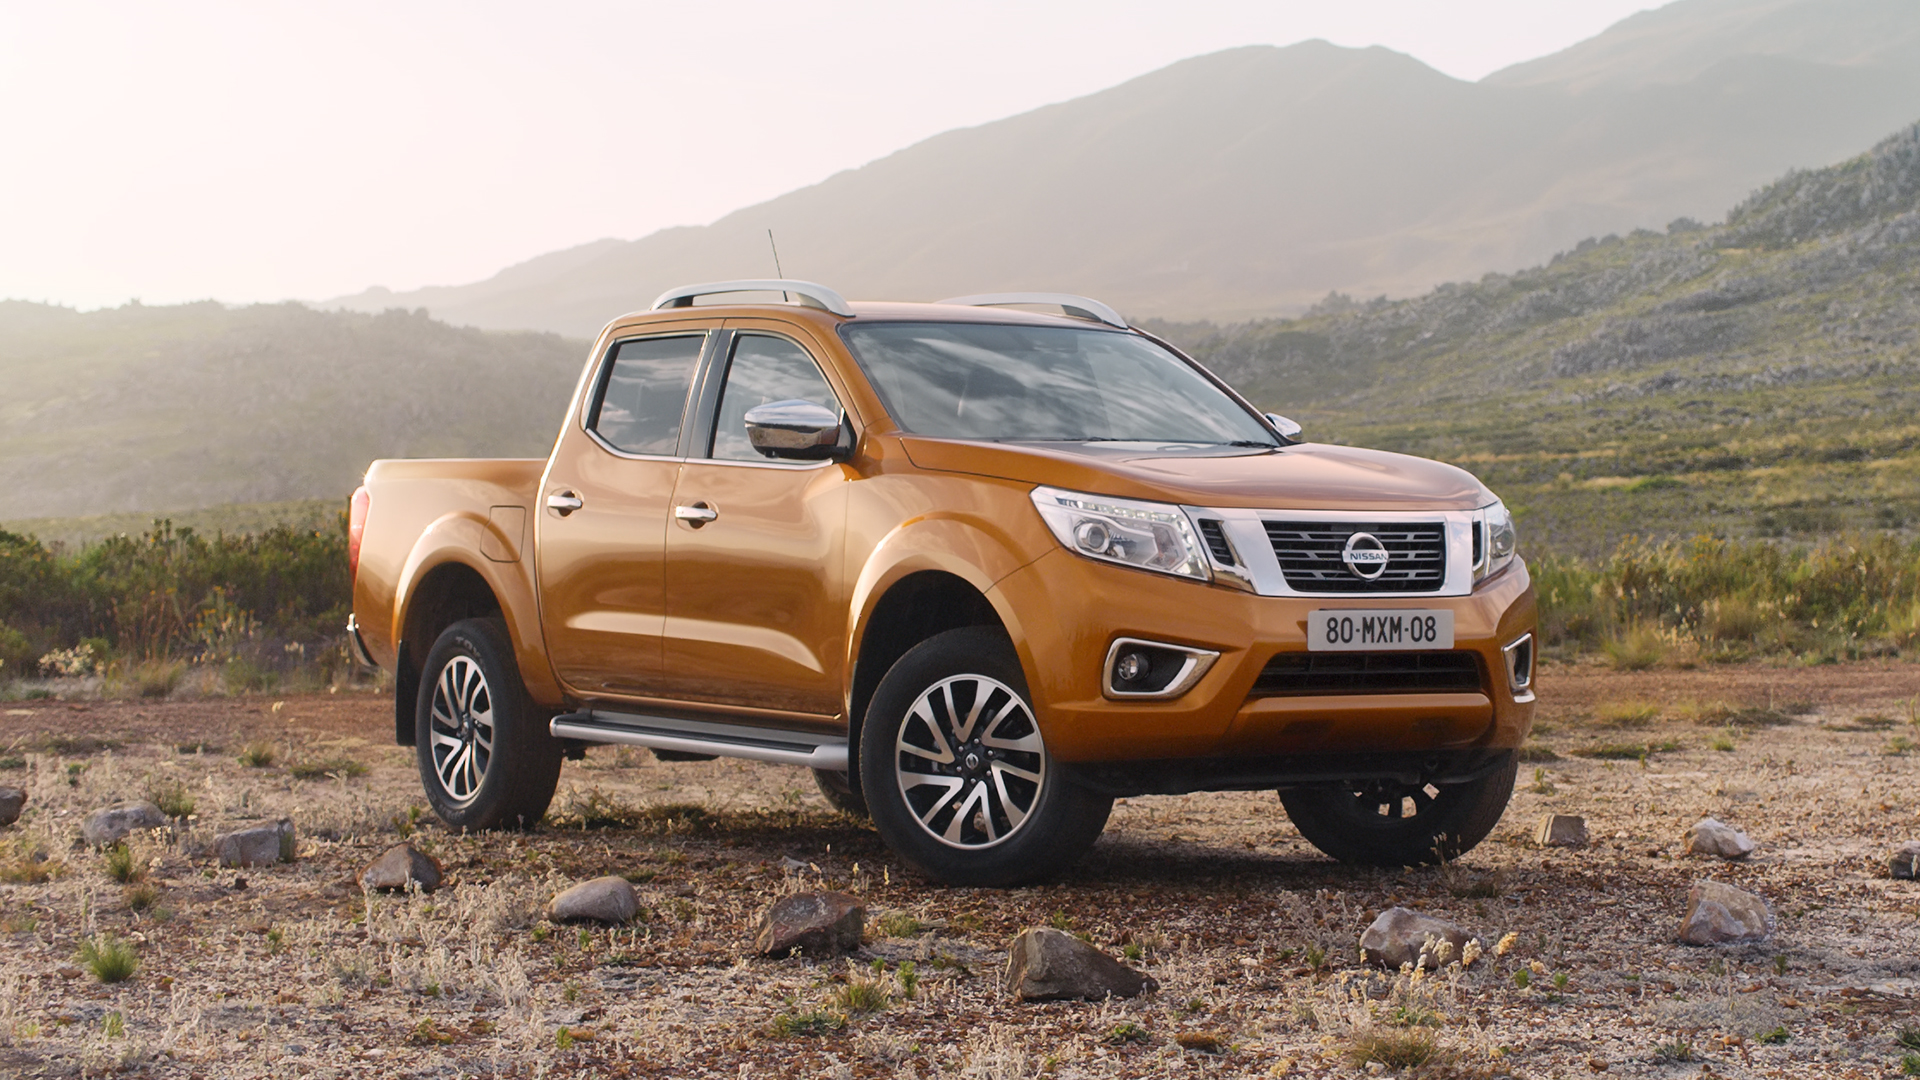 nissan navara pick up truck 4x4 nissan. Black Bedroom Furniture Sets. Home Design Ideas